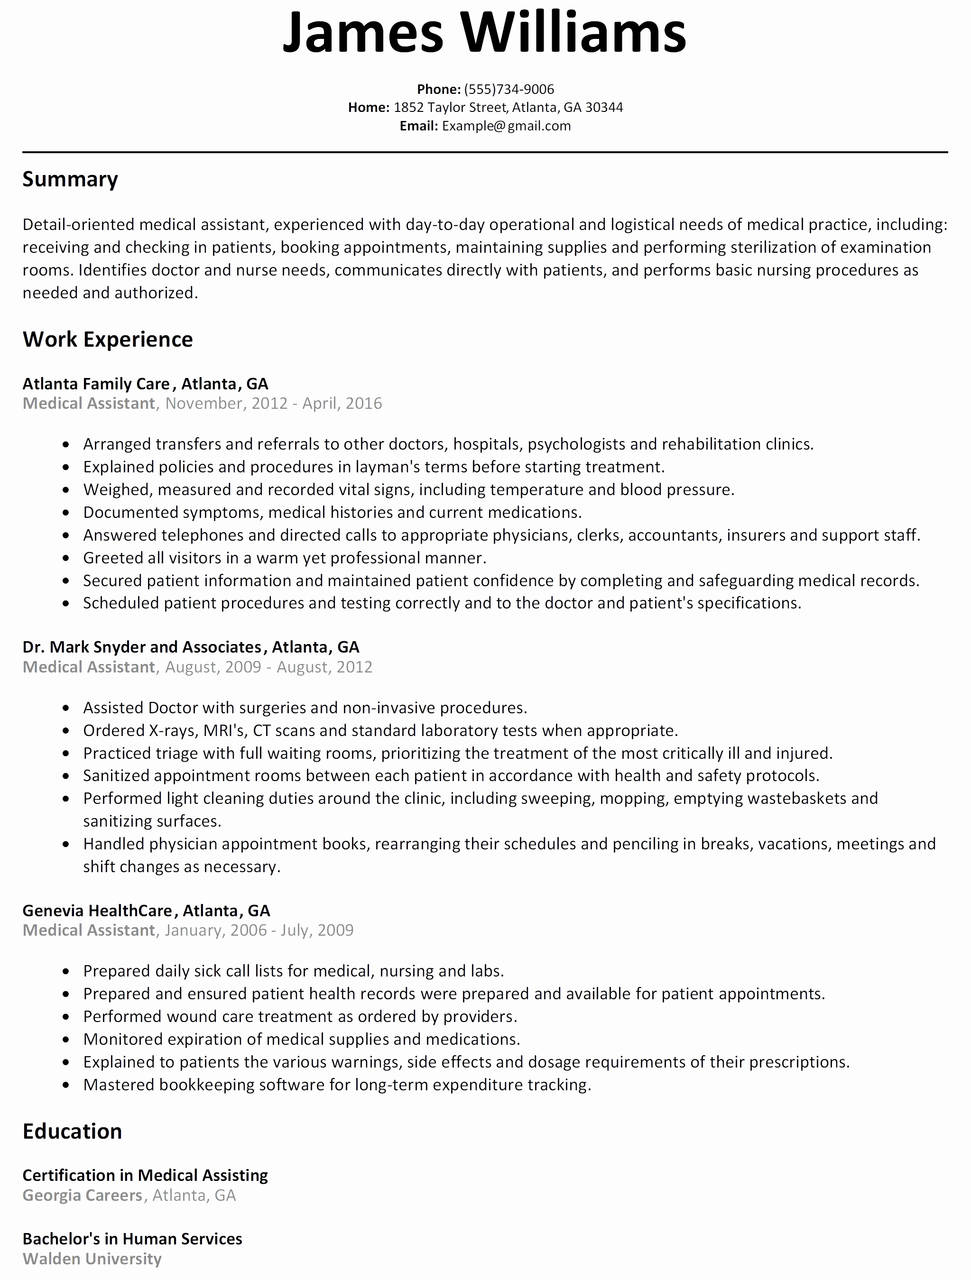 Free Internship Resume Template - Resume Template Word Download New Free Resume Templates Downloads